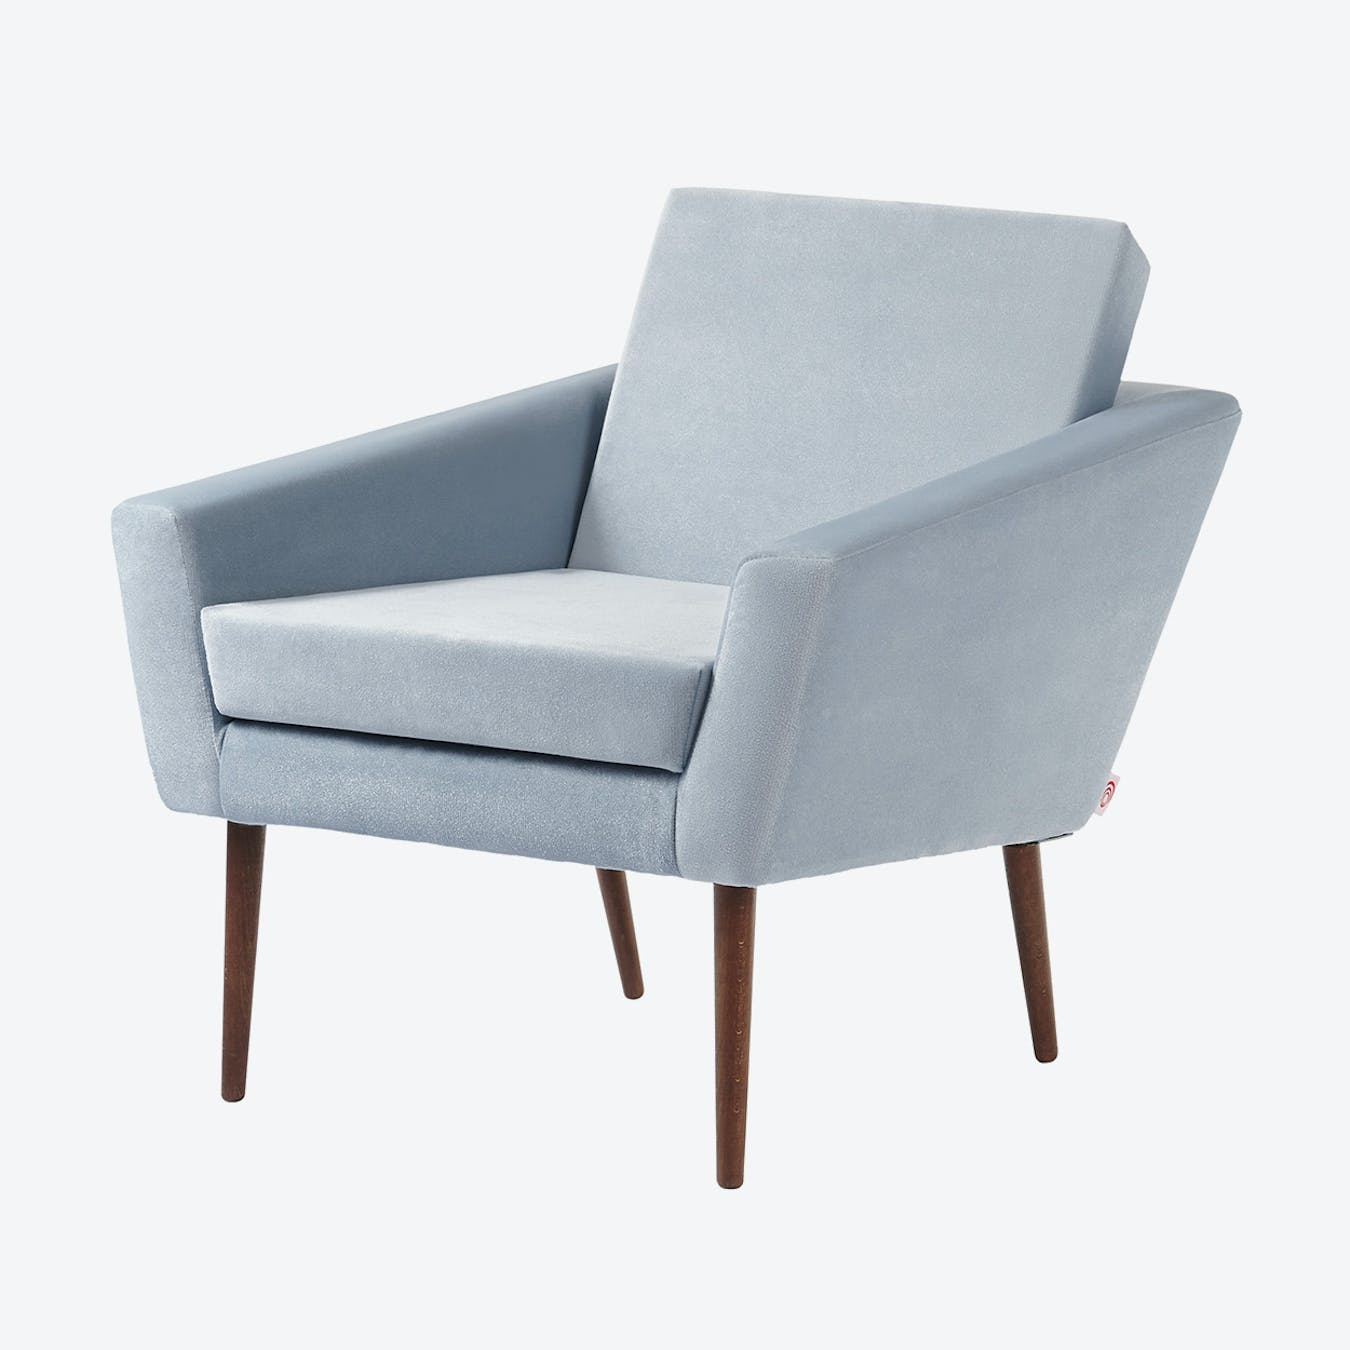 Supernova Chair - Velvet Line in Ice Grey